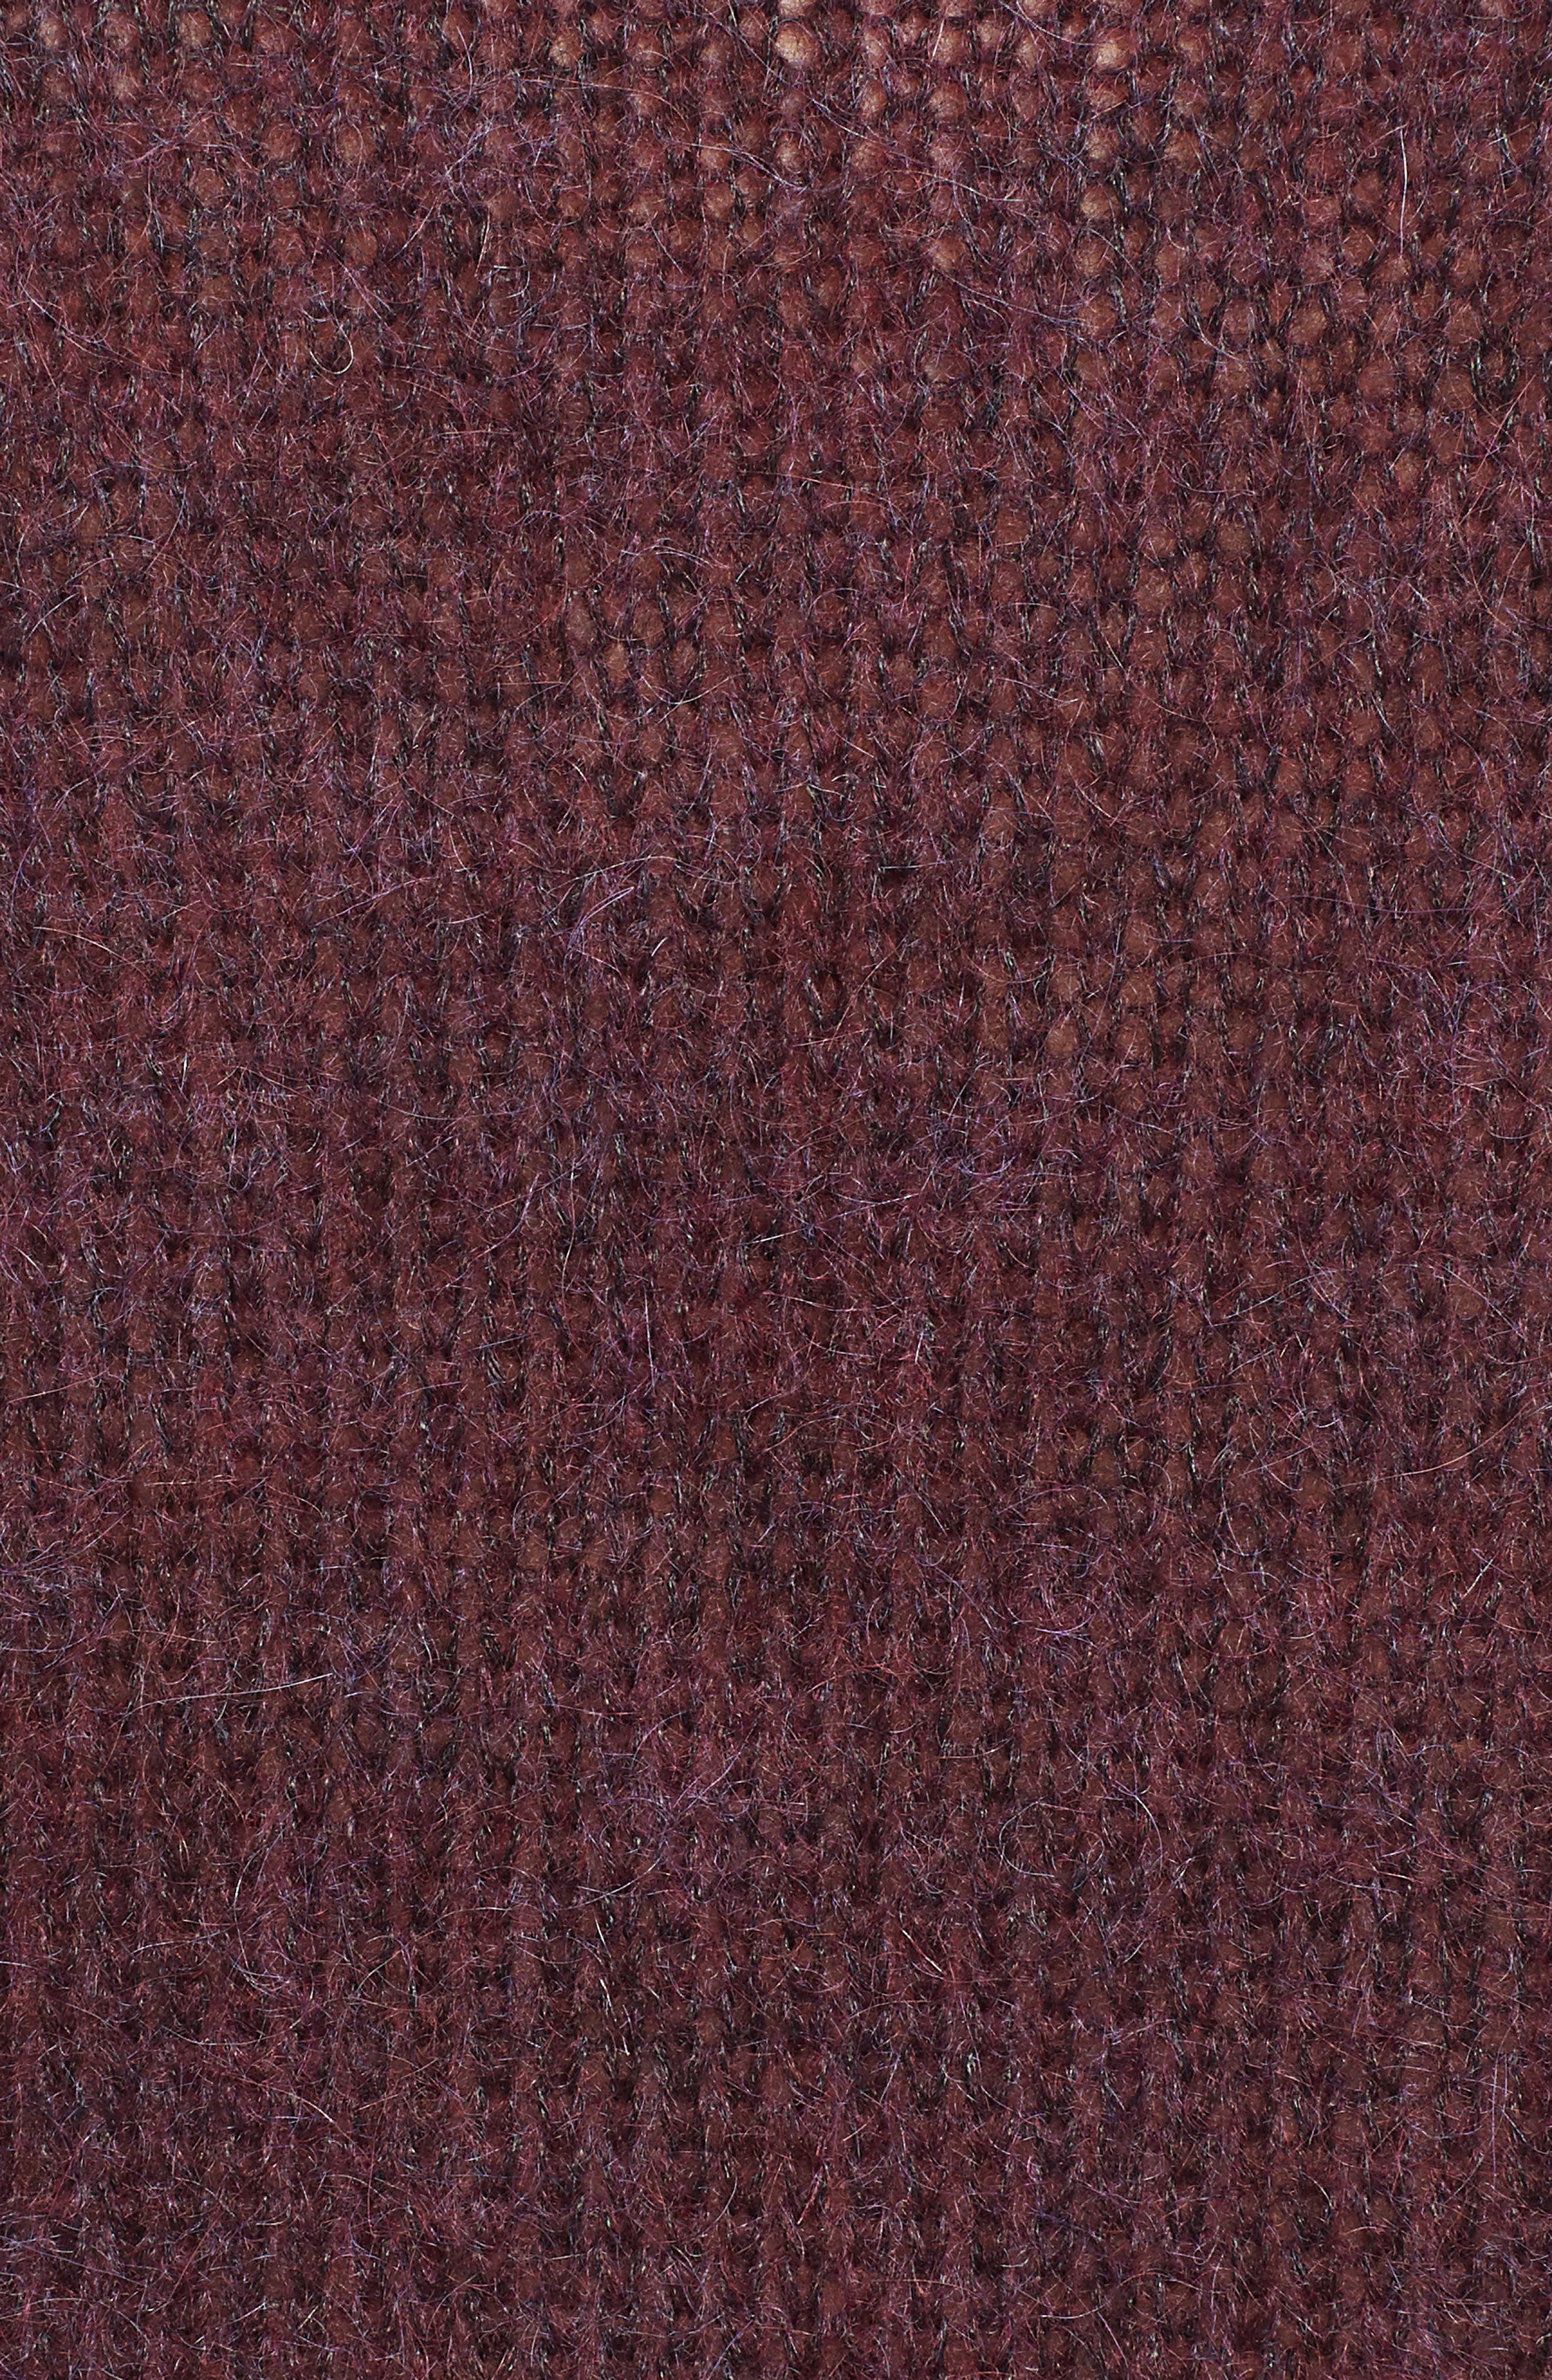 Ansley Crewneck Sweater,                             Alternate thumbnail 5, color,                             RICH CARMINE